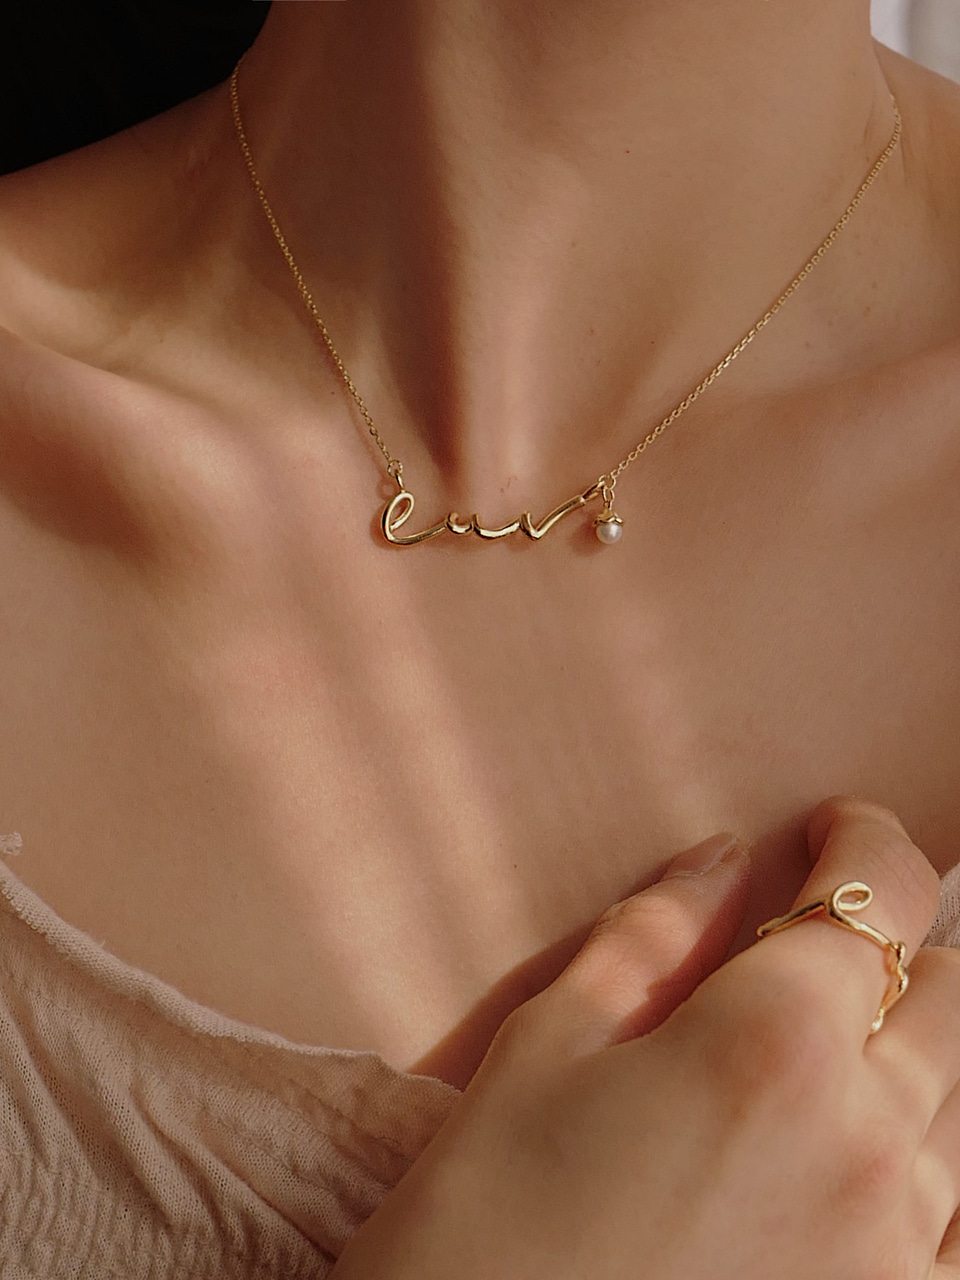 Luv Flow Necklace (2/20 이후 순차배송)